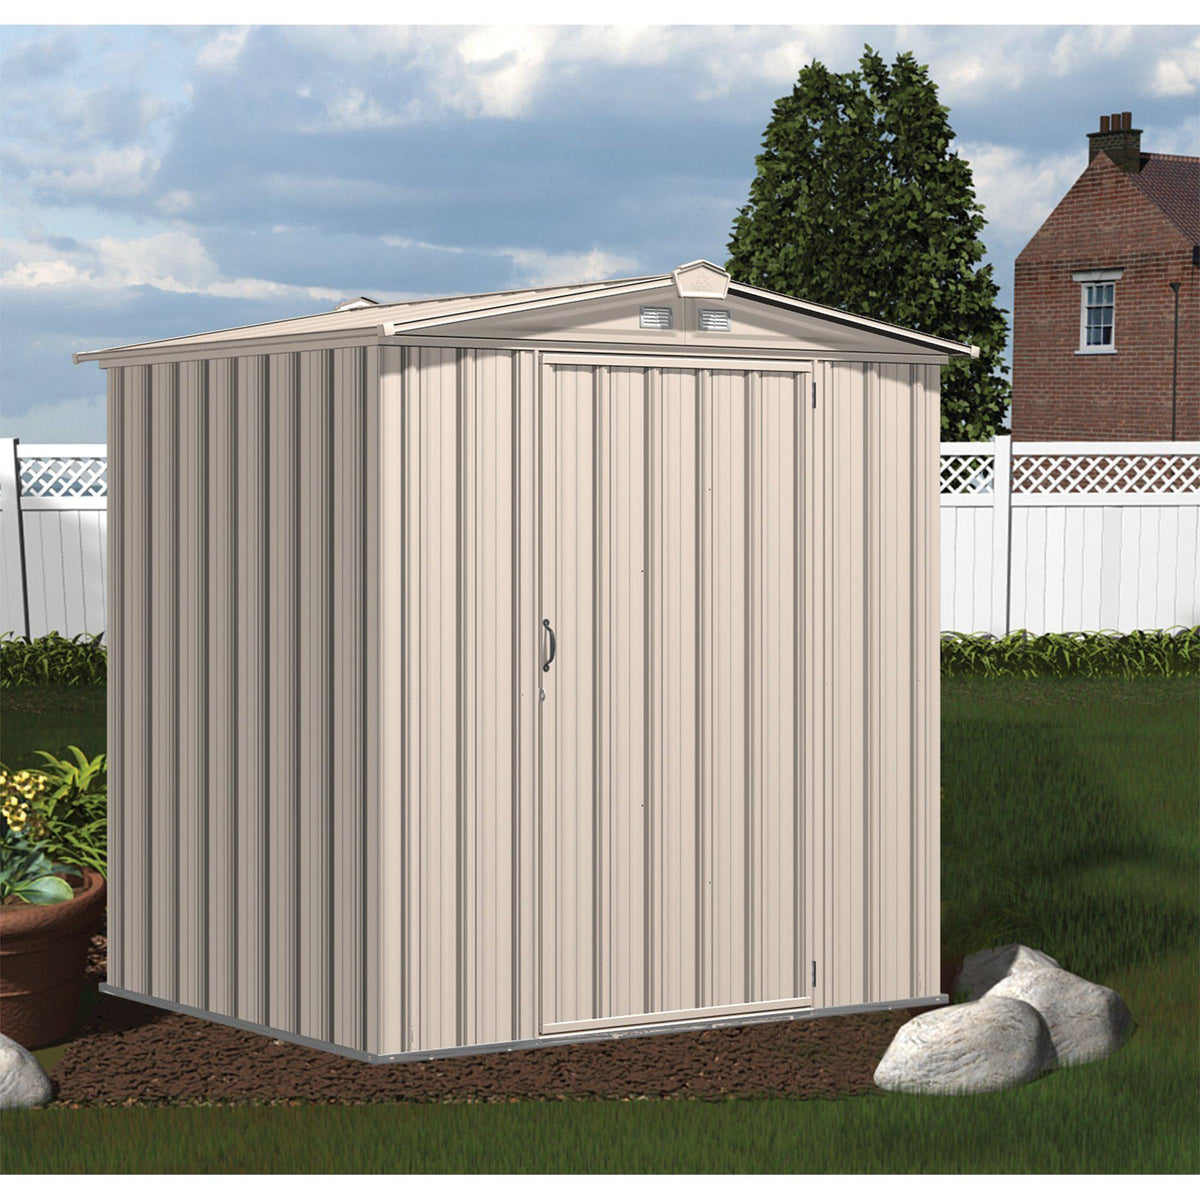 Arrow EZEE Shed Low Gable Steel Storage Shed, Cream, 6 x 5 ft.